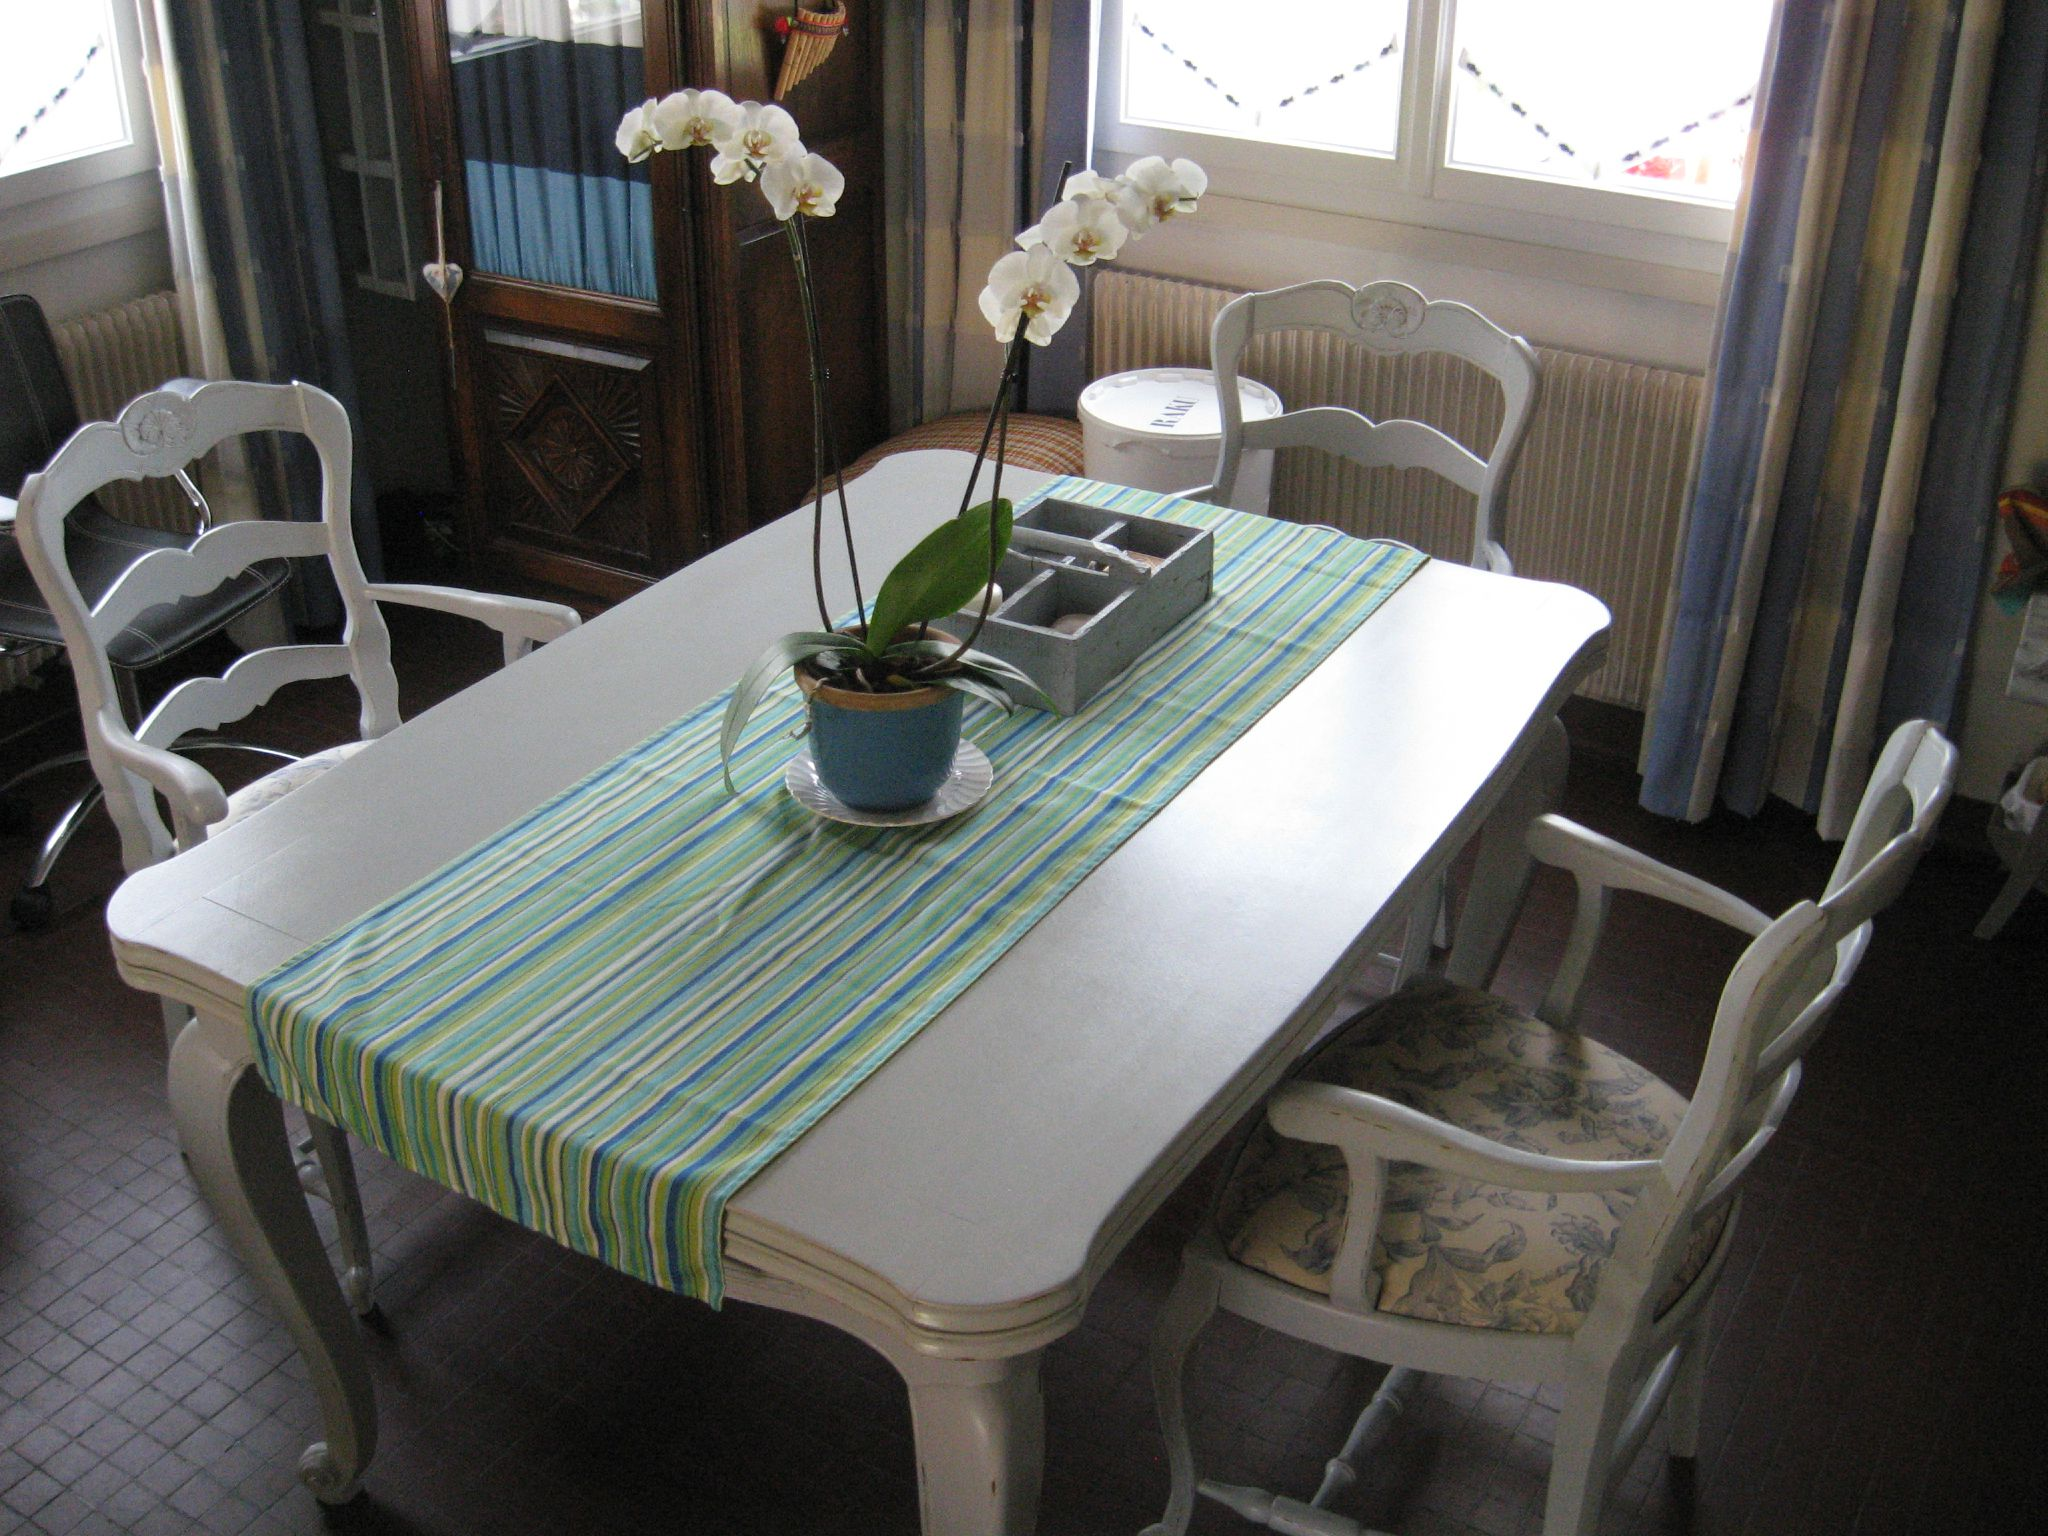 Relooking table salle manger photos vos conseils - Relooking salle a manger ...